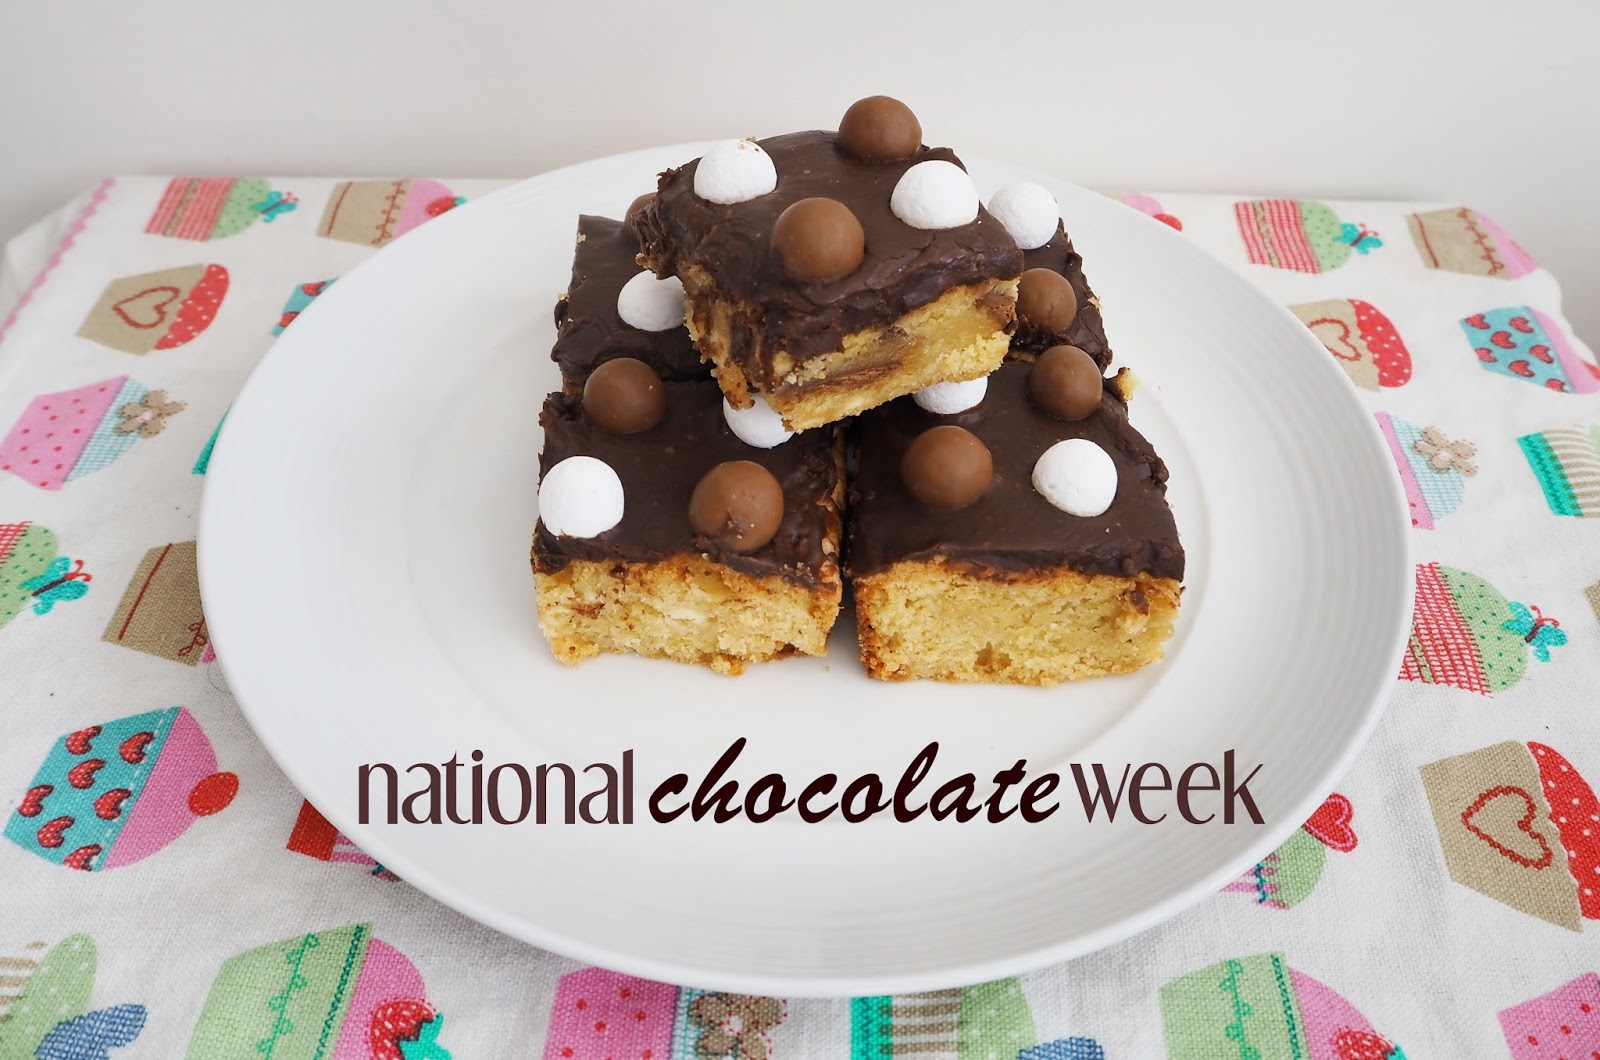 Baking Brownies for National Chocolate Week: Katie Kirk Loves Blog